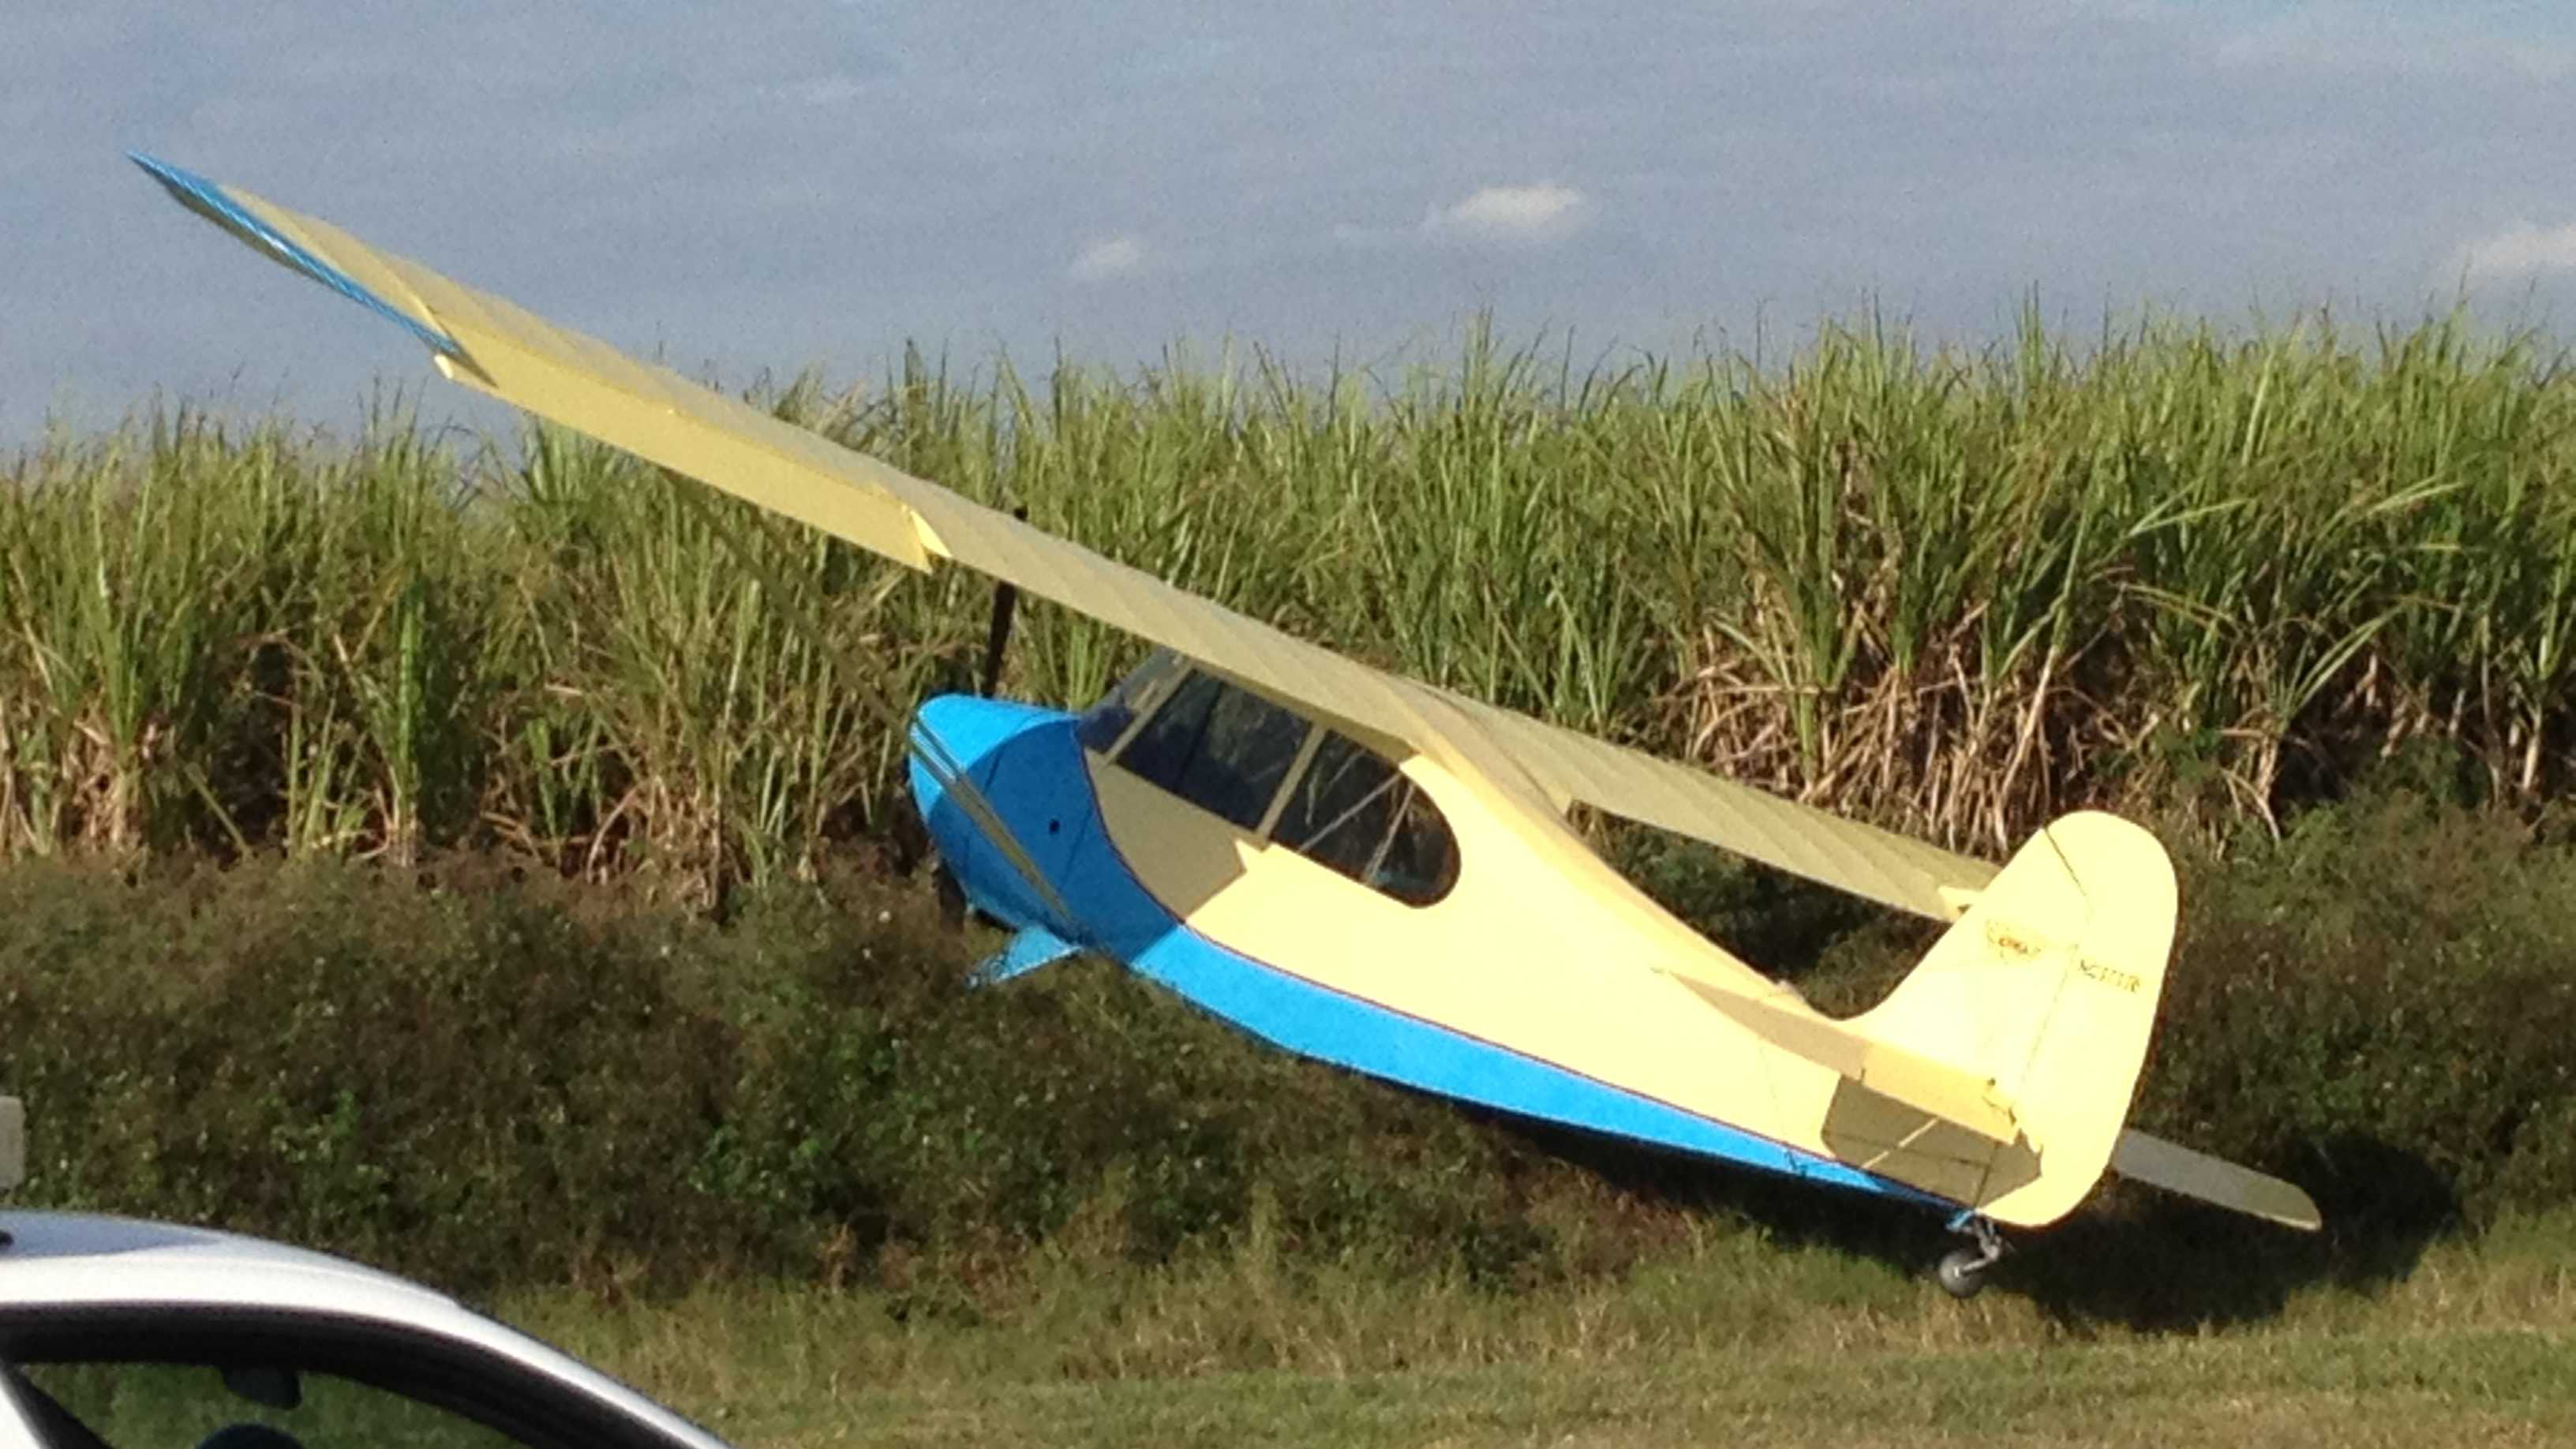 Crop duster plane in sugar cane field